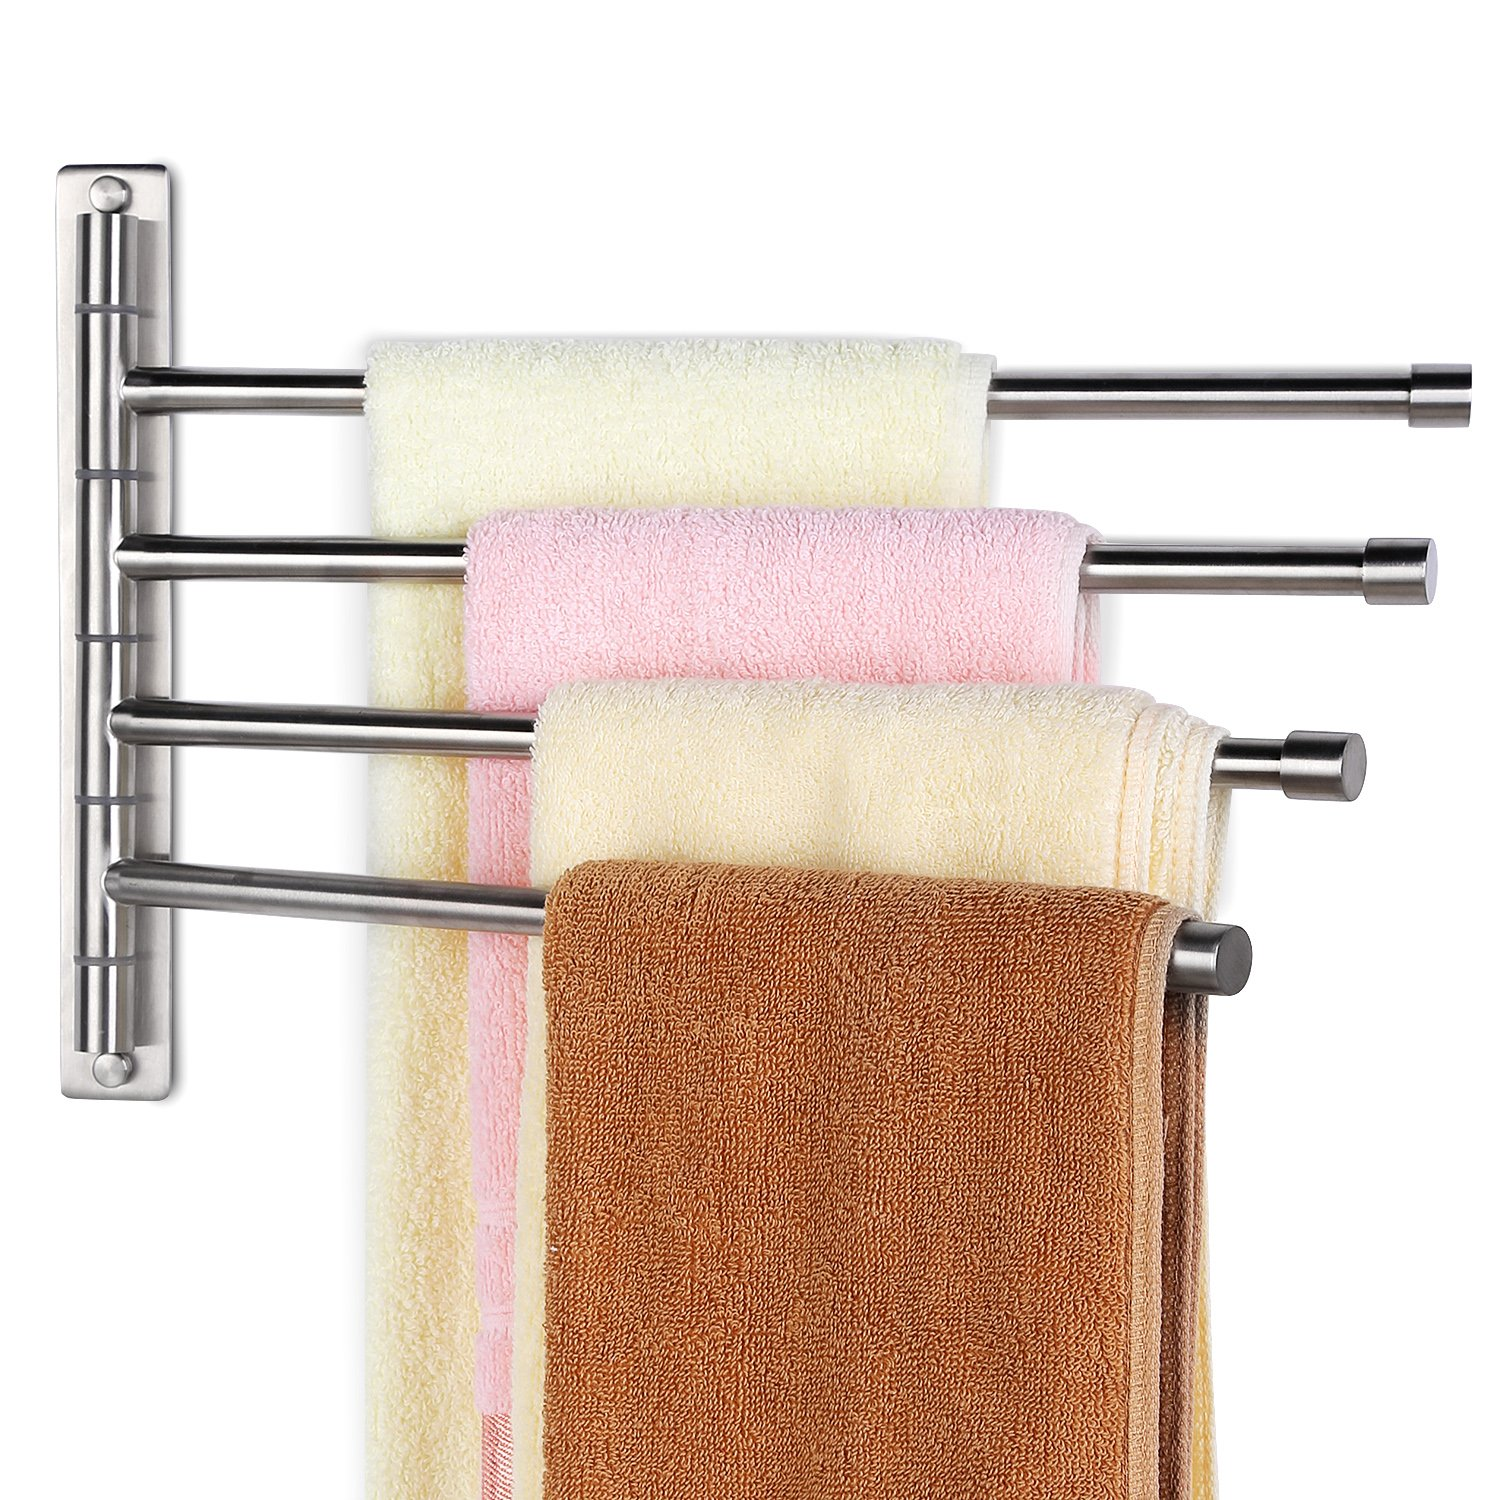 HOMEIDEAS Swing Out Towel Bar SUS304 Stainless Steel 4-Bar Folding Arm Swivel Hanger Bathroom Storage Organizer Wall Mount Towel Rack,Brushed Finish by HOMEIDEAS